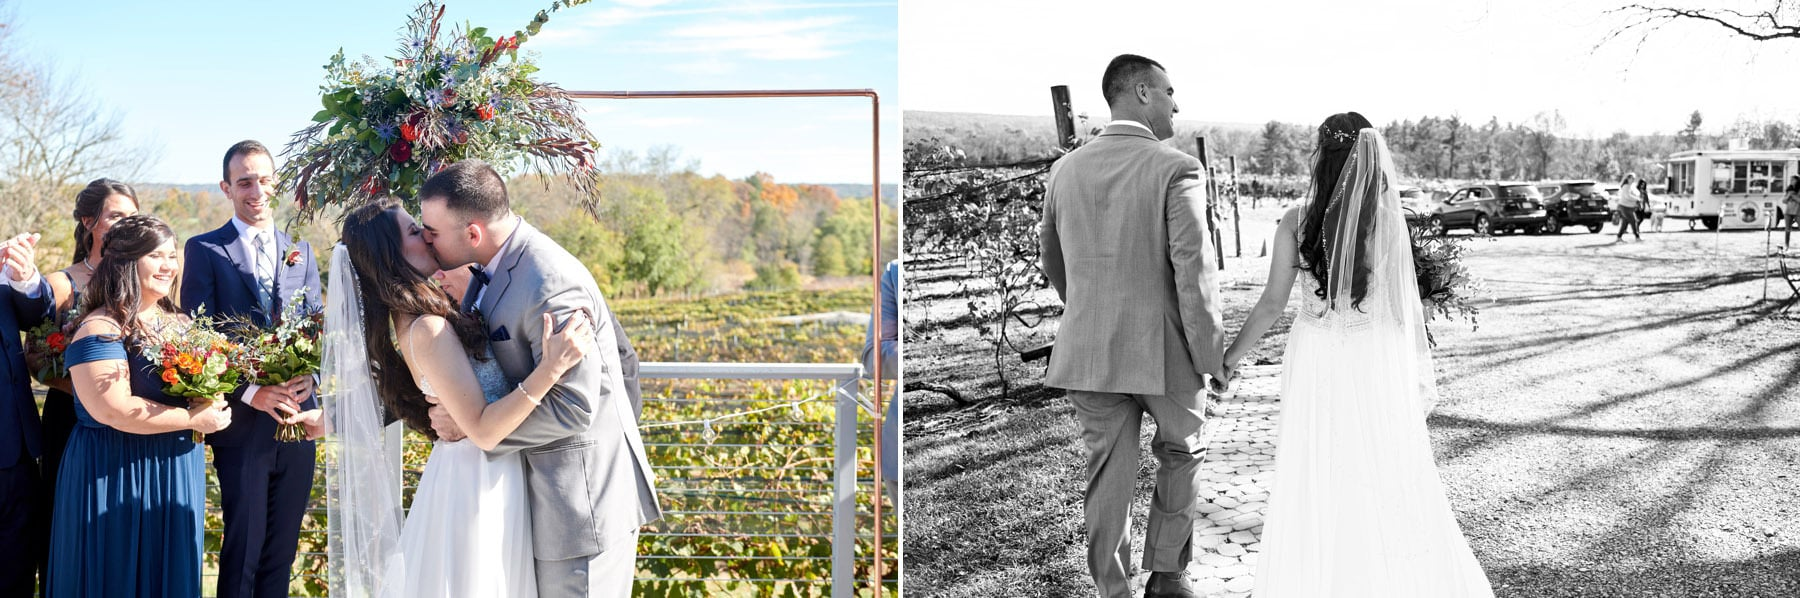 wedding first kiss photos at old york cellars